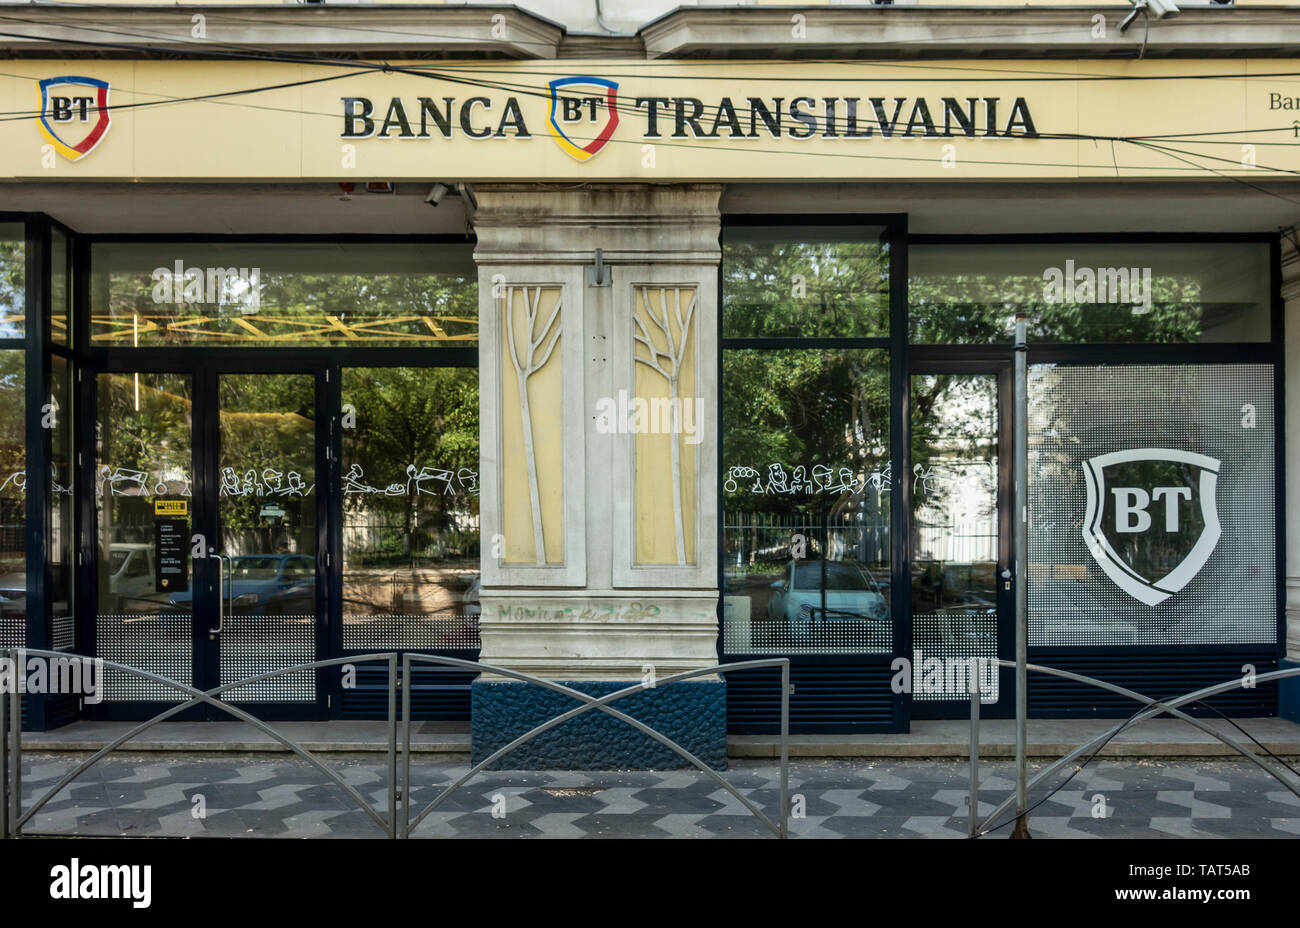 Frontage of a branch of the Romanian bank, Banka Transilvania, BT, in the Old Town area of central Bucharest, Romania - Stock Image